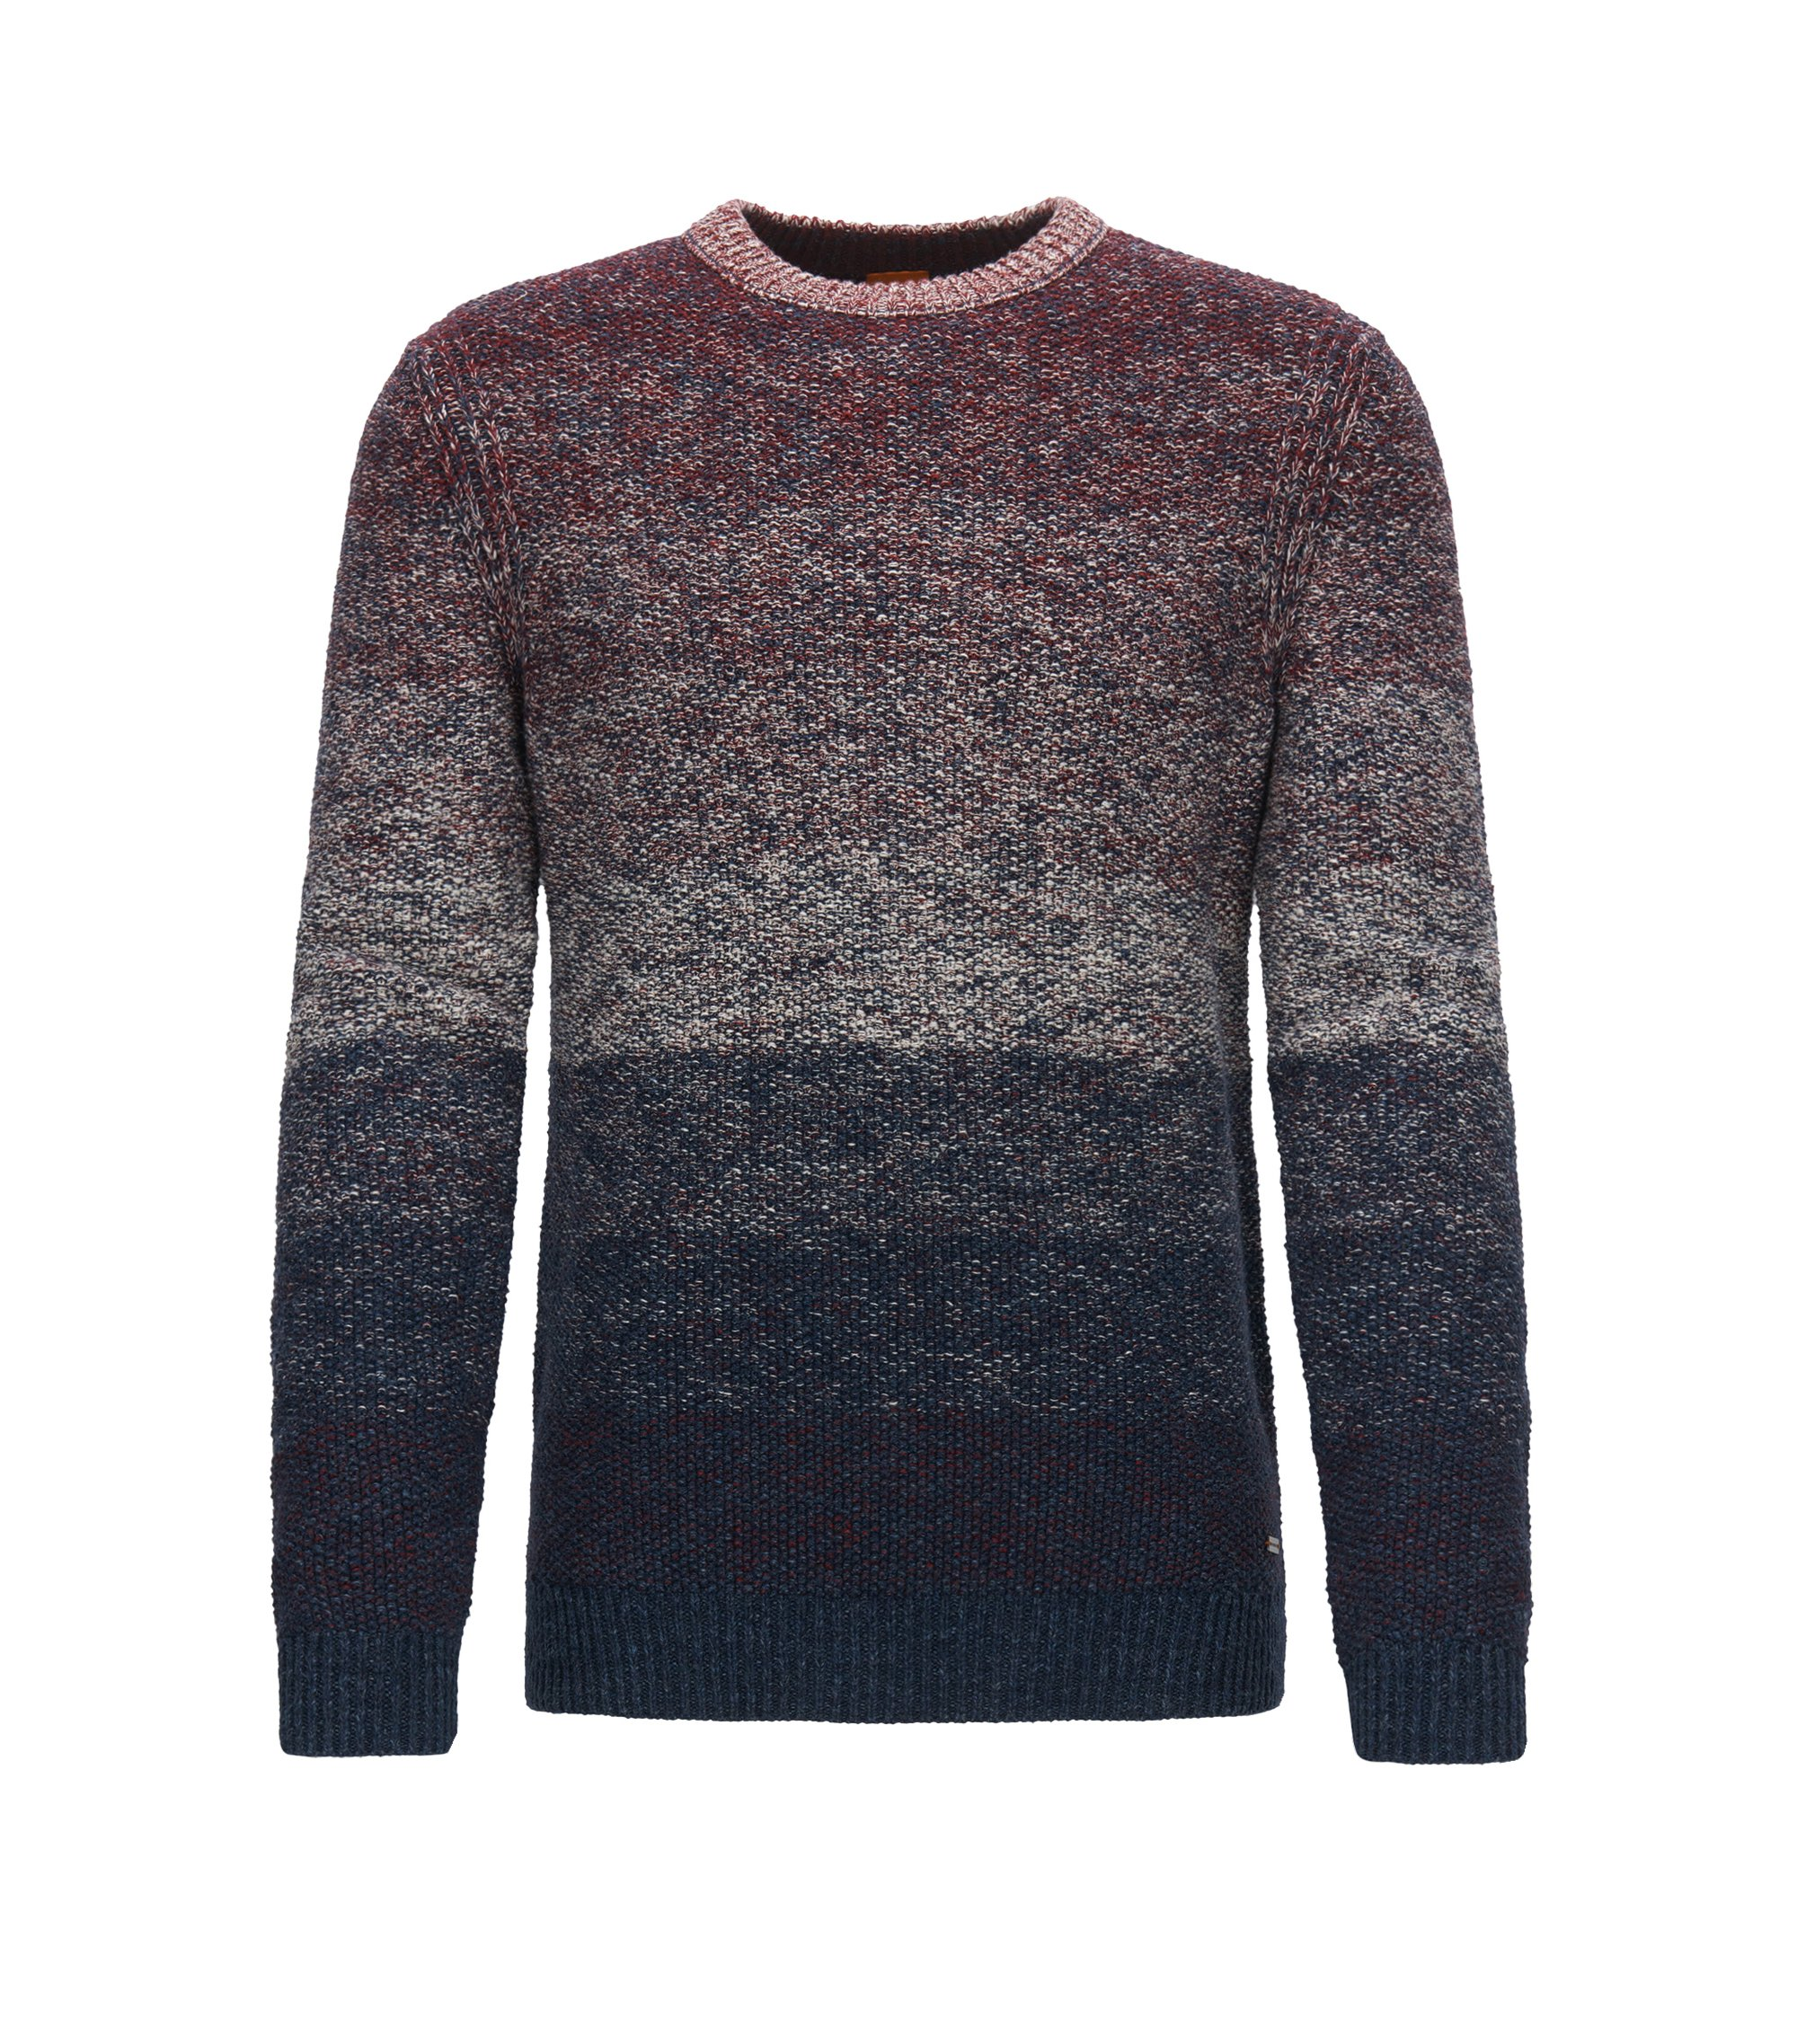 'Arduage' | Gradient Cotton Sweater, Dark Blue